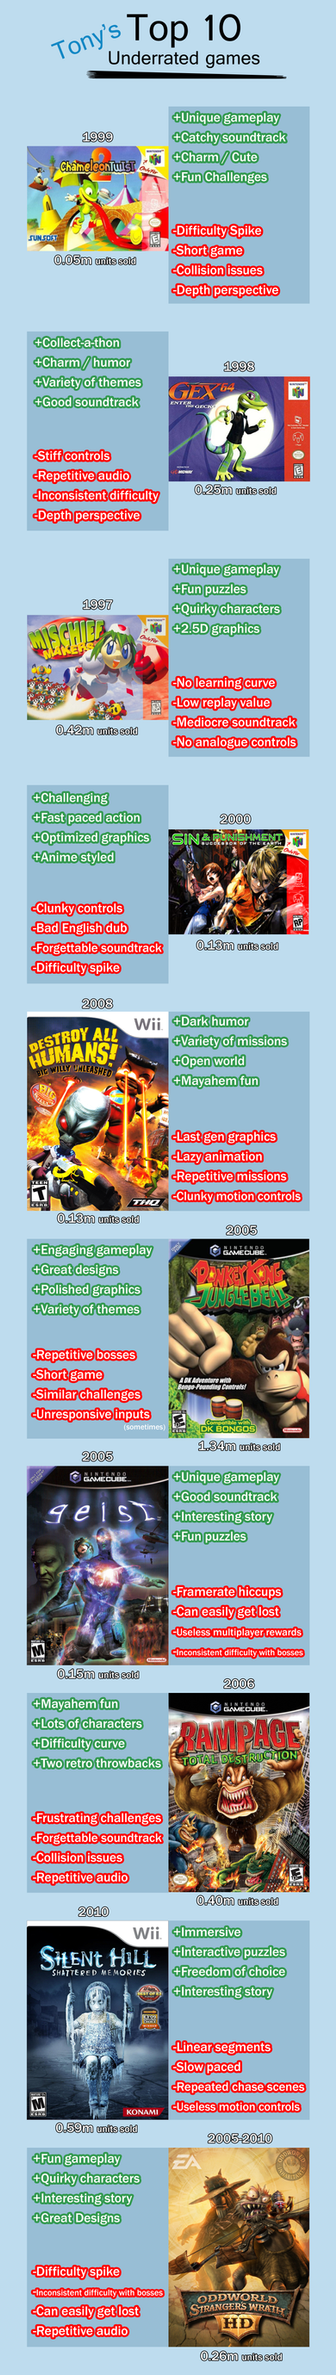 Tony's Top 10 Underrated Games by gagaman92